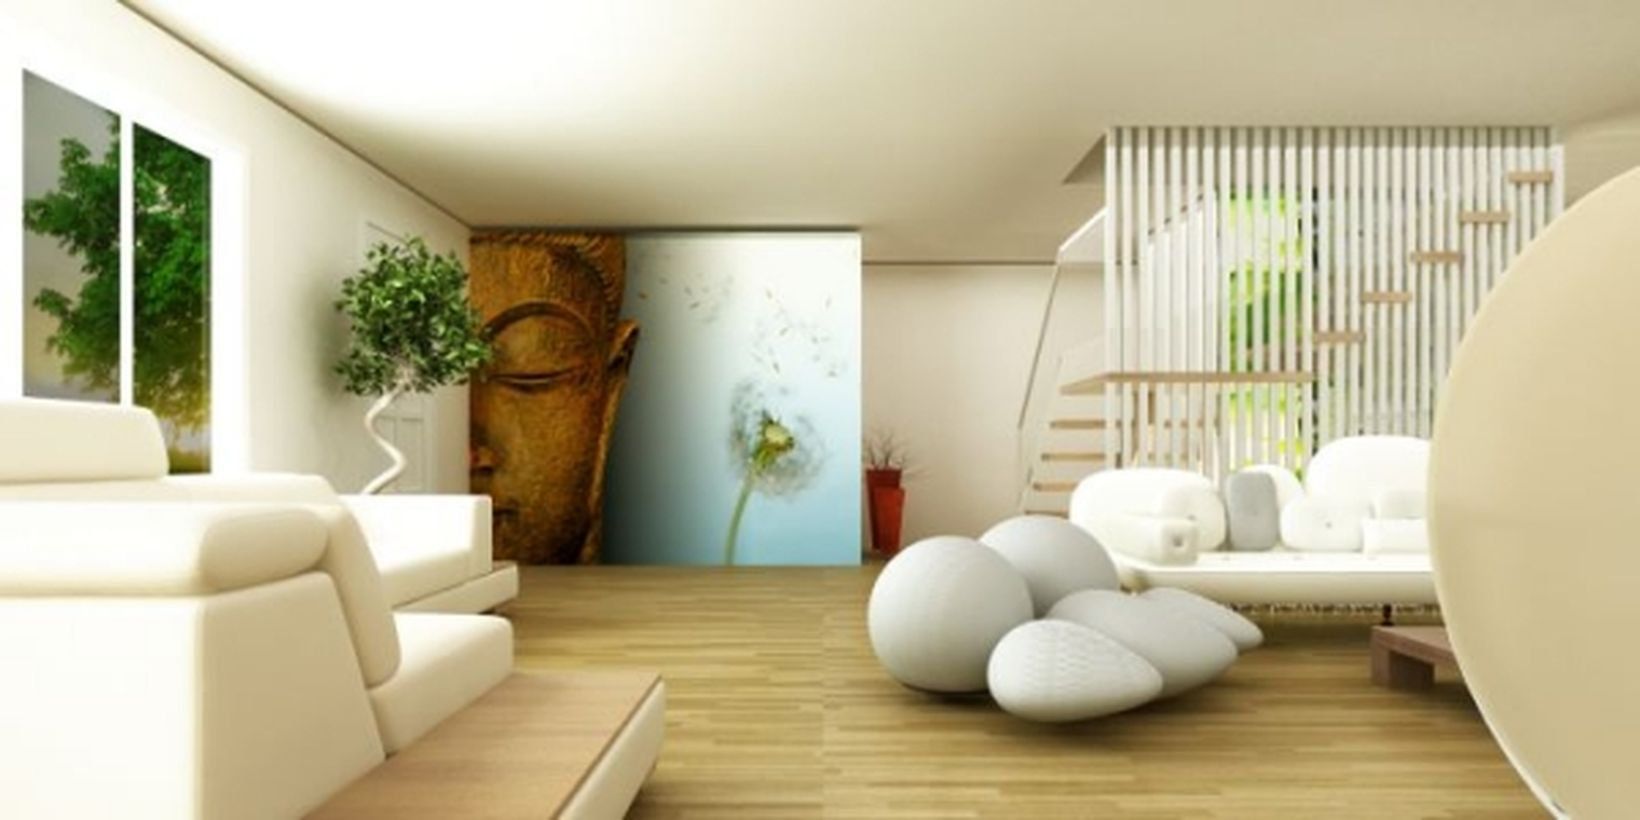 Best artistic wall painting ideas with budhha face painting on the wall you must try